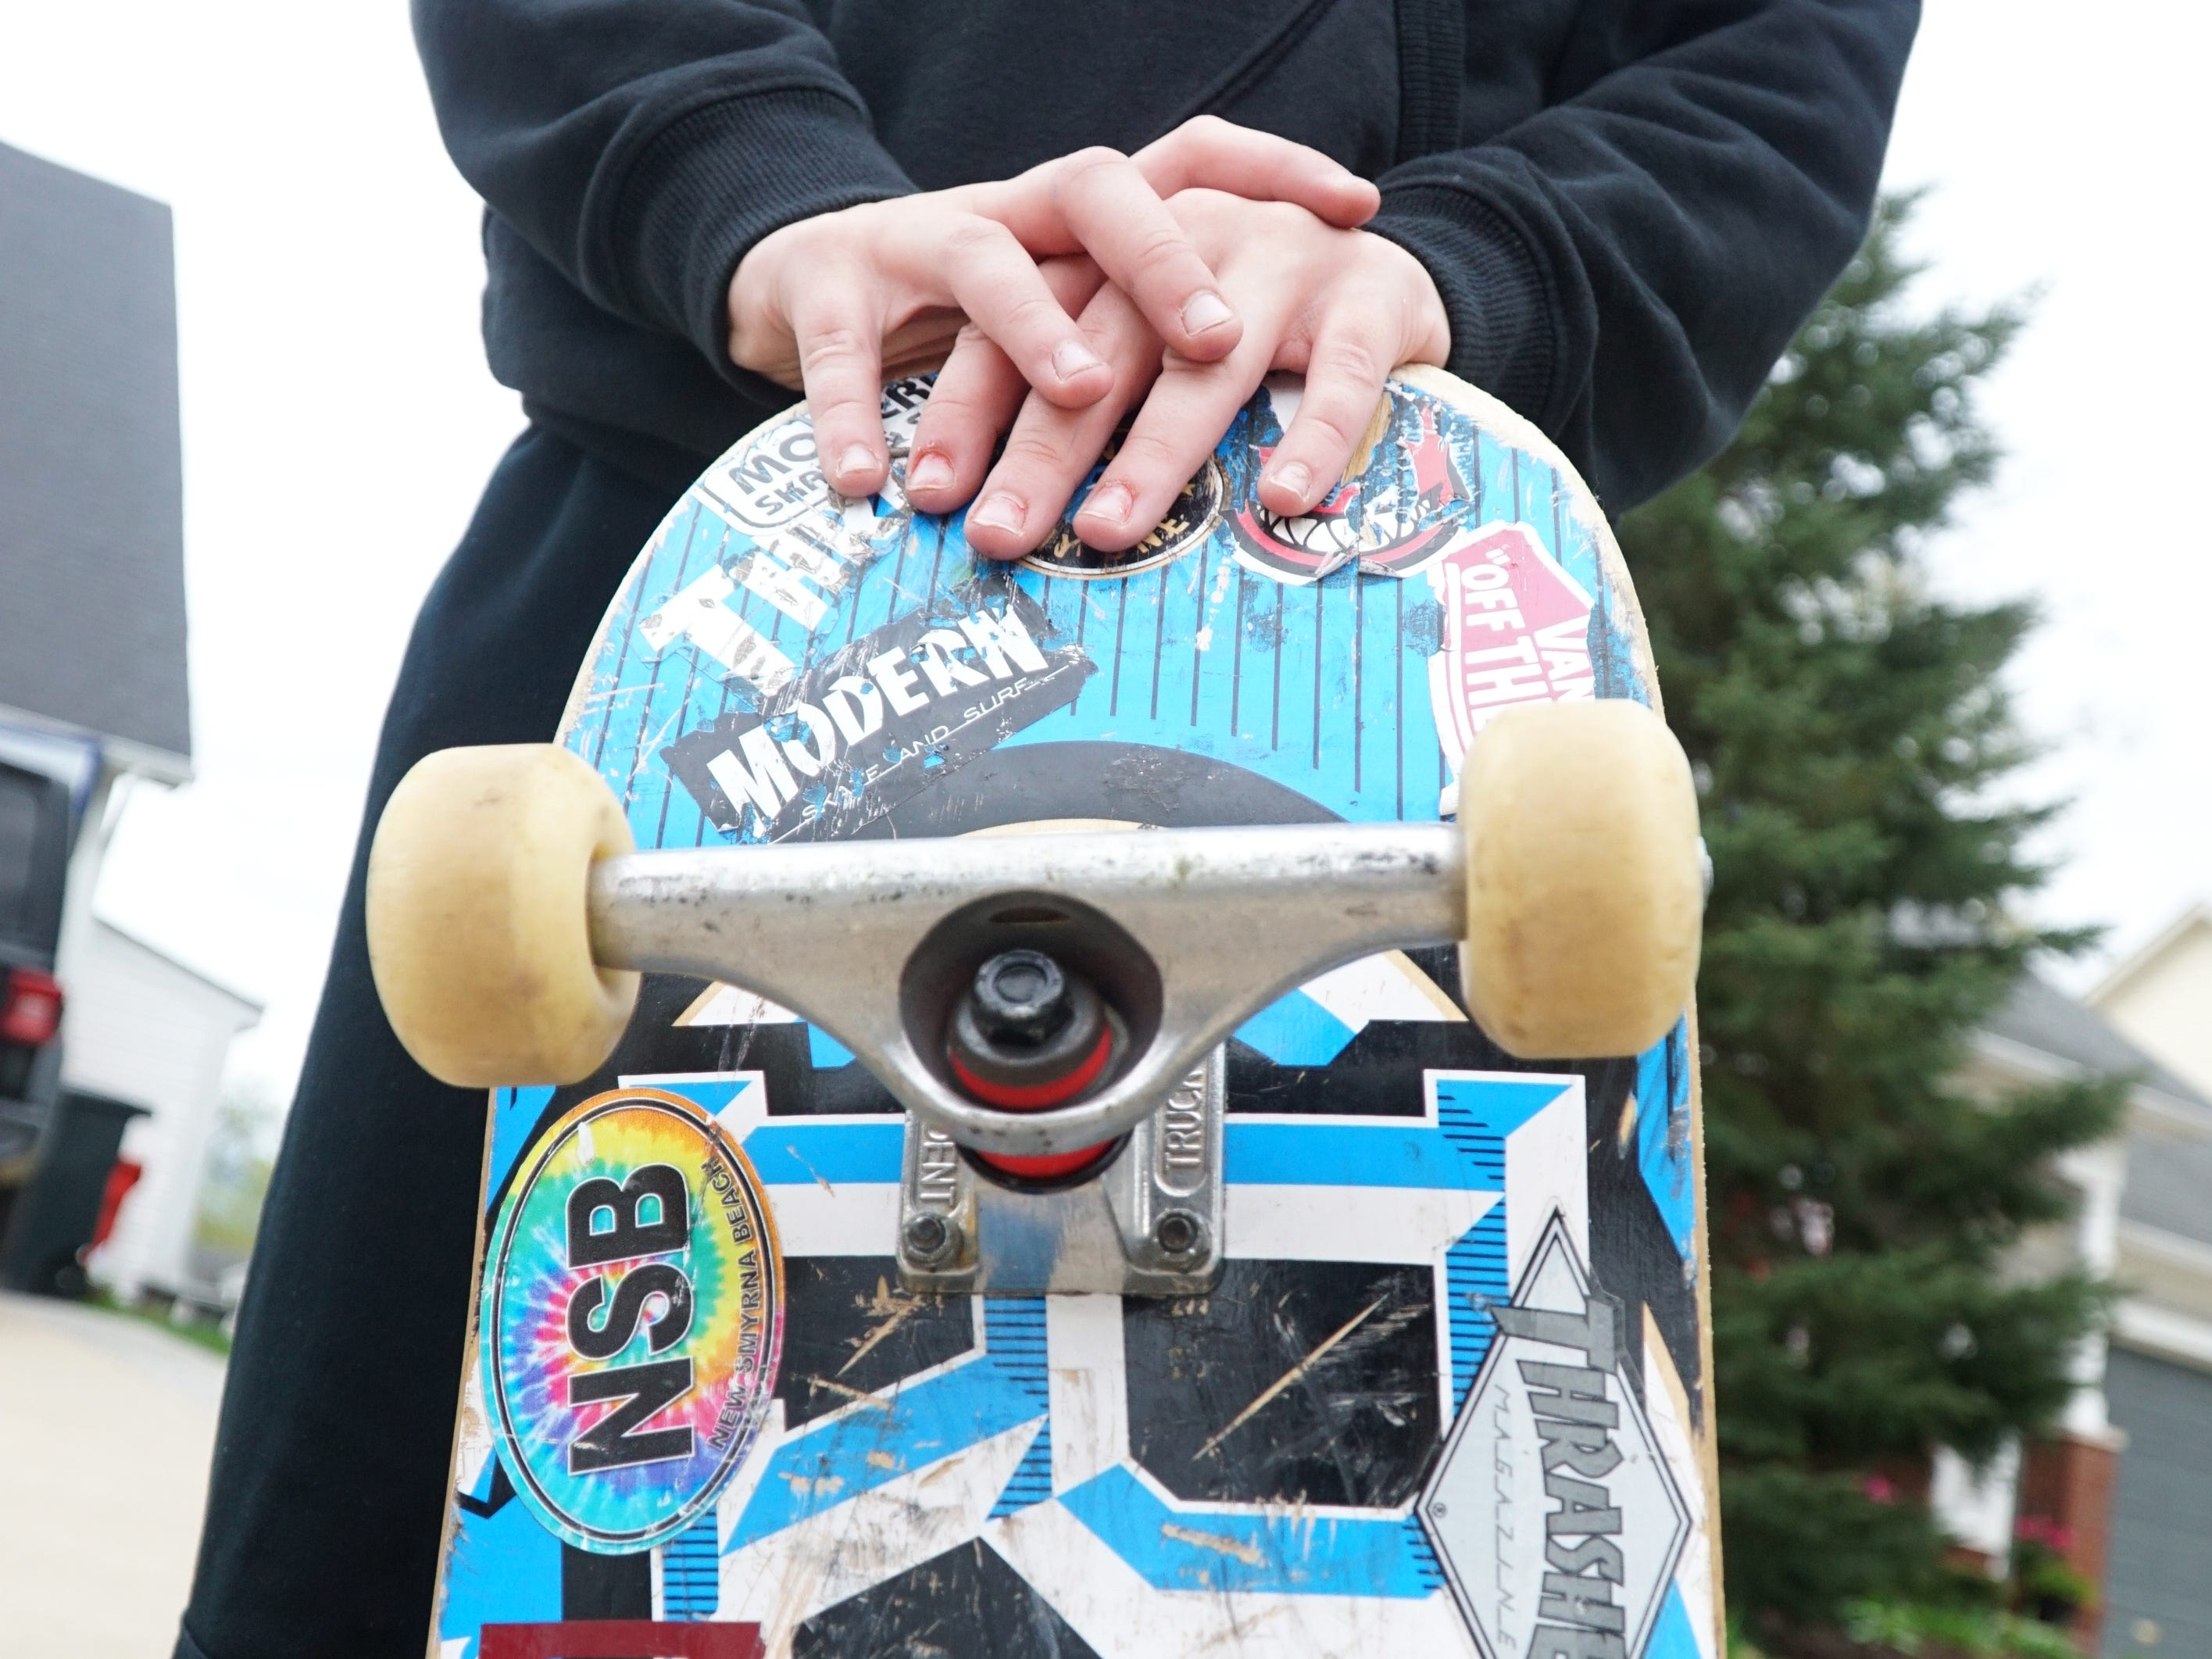 Duke Stempien, 11, with his much sticker-covered skateboard.